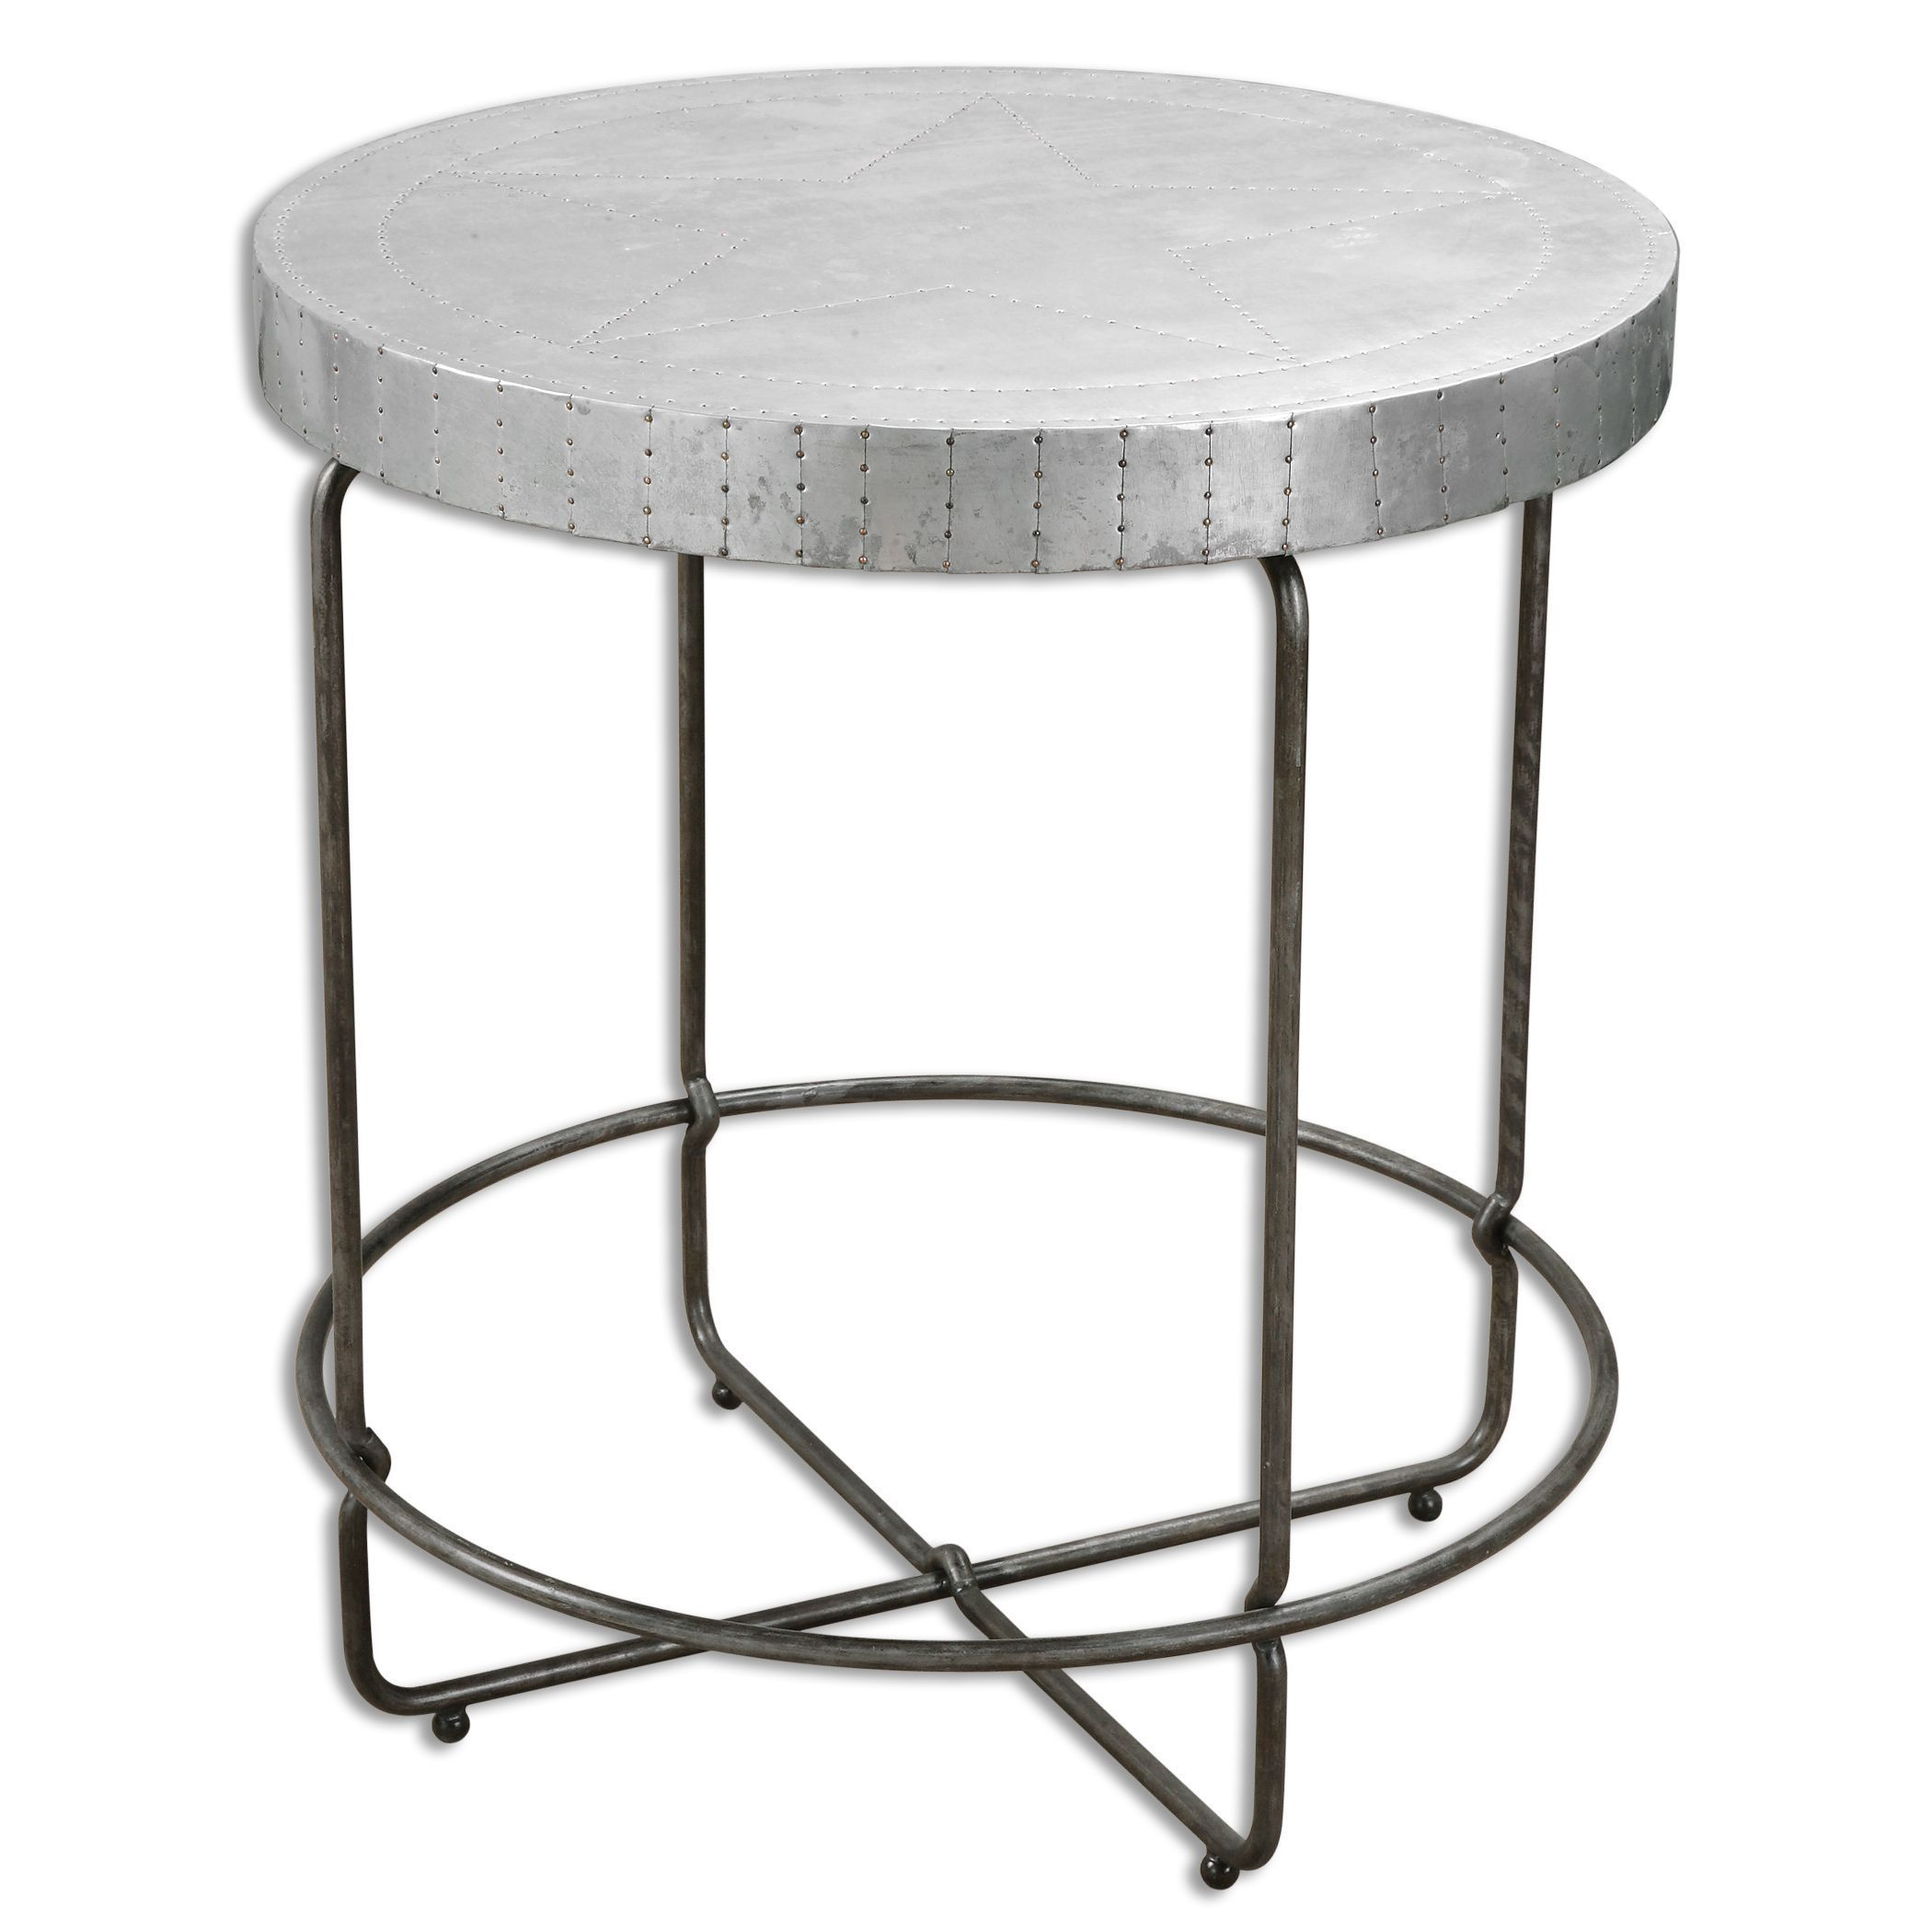 uttermost amiano iron zinc accent table free shipping today tall console black pottery barn astoria collection patio furniture chest grey marble dining tablecloth for round ikea